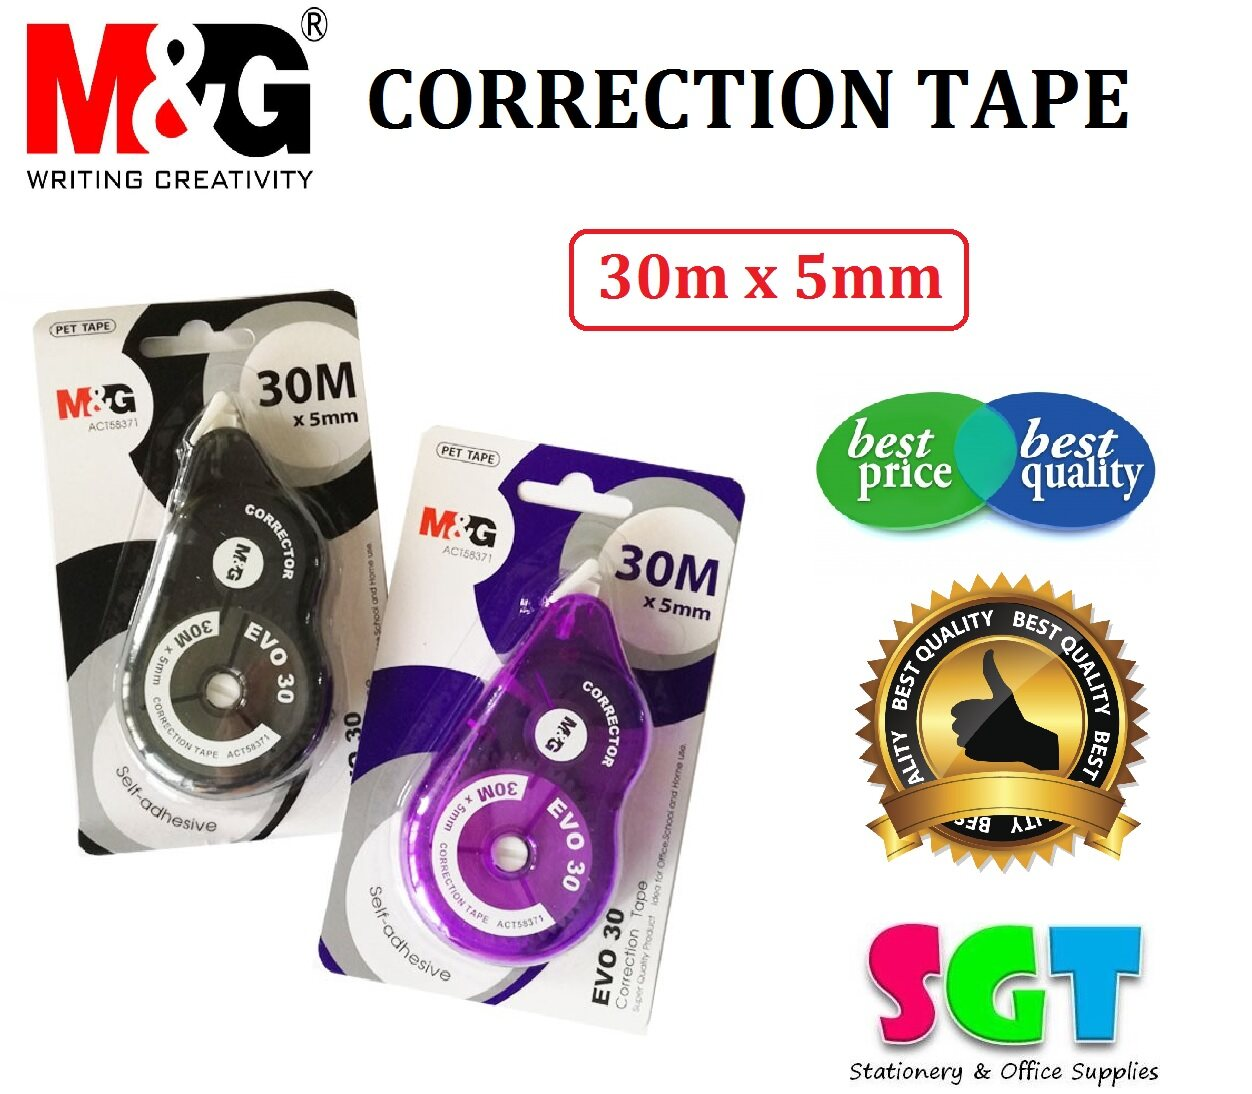 M&G evo 30 Correction Tape 30m x 5mm ( 1 PC Only )